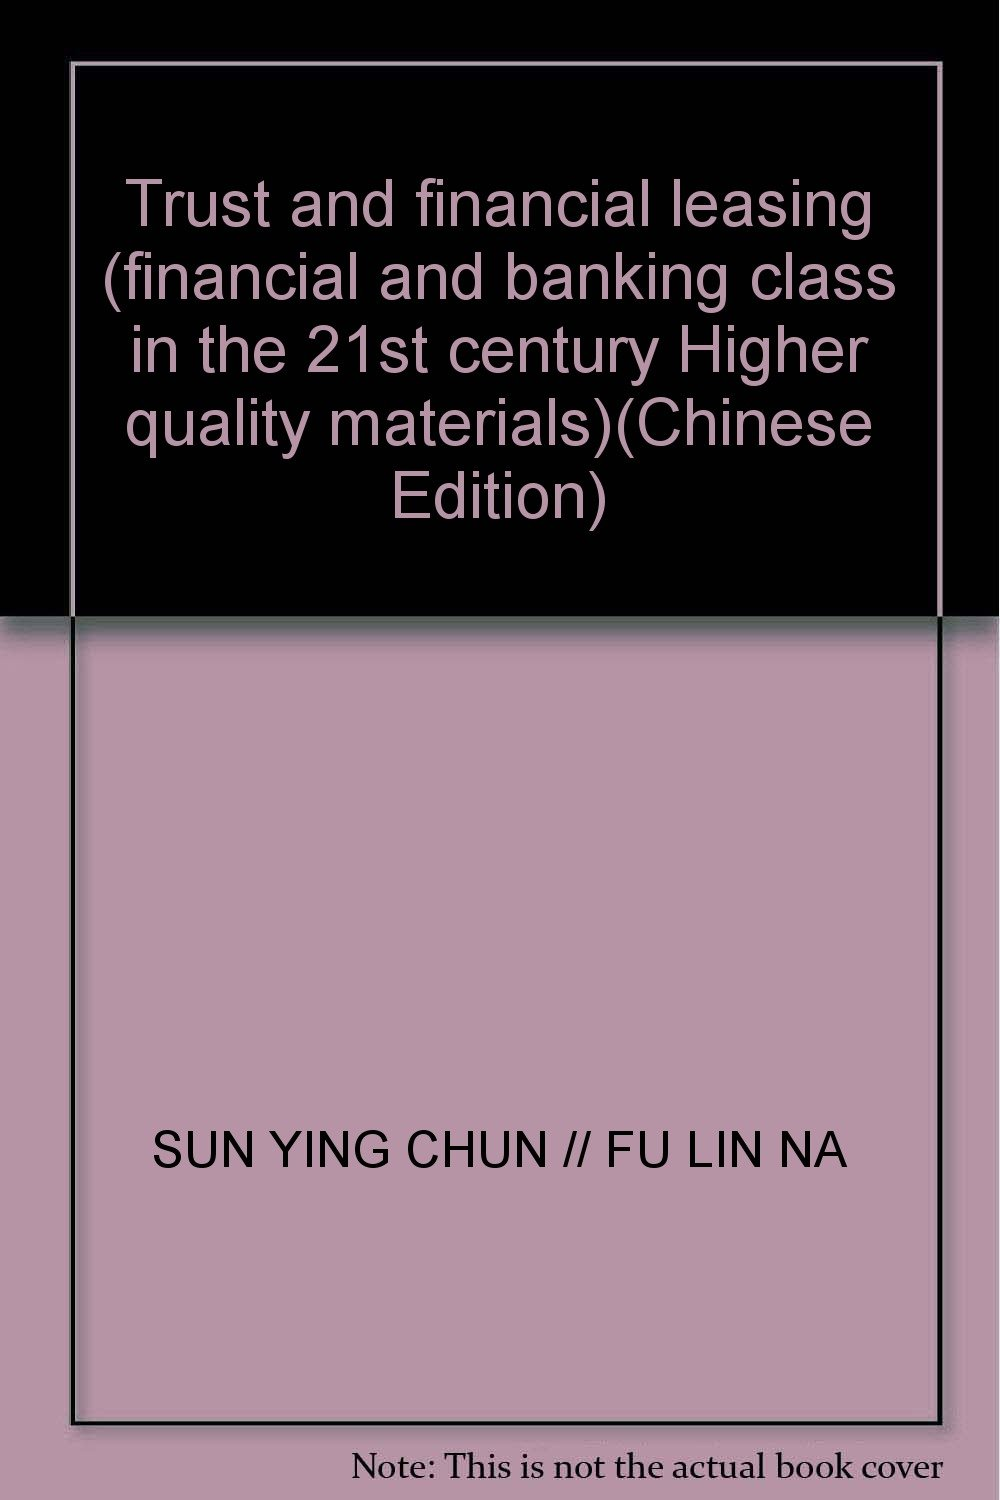 Trust and financial leasing (financial and banking class in the 21st century Higher quality materials)(Chinese Edition) PDF